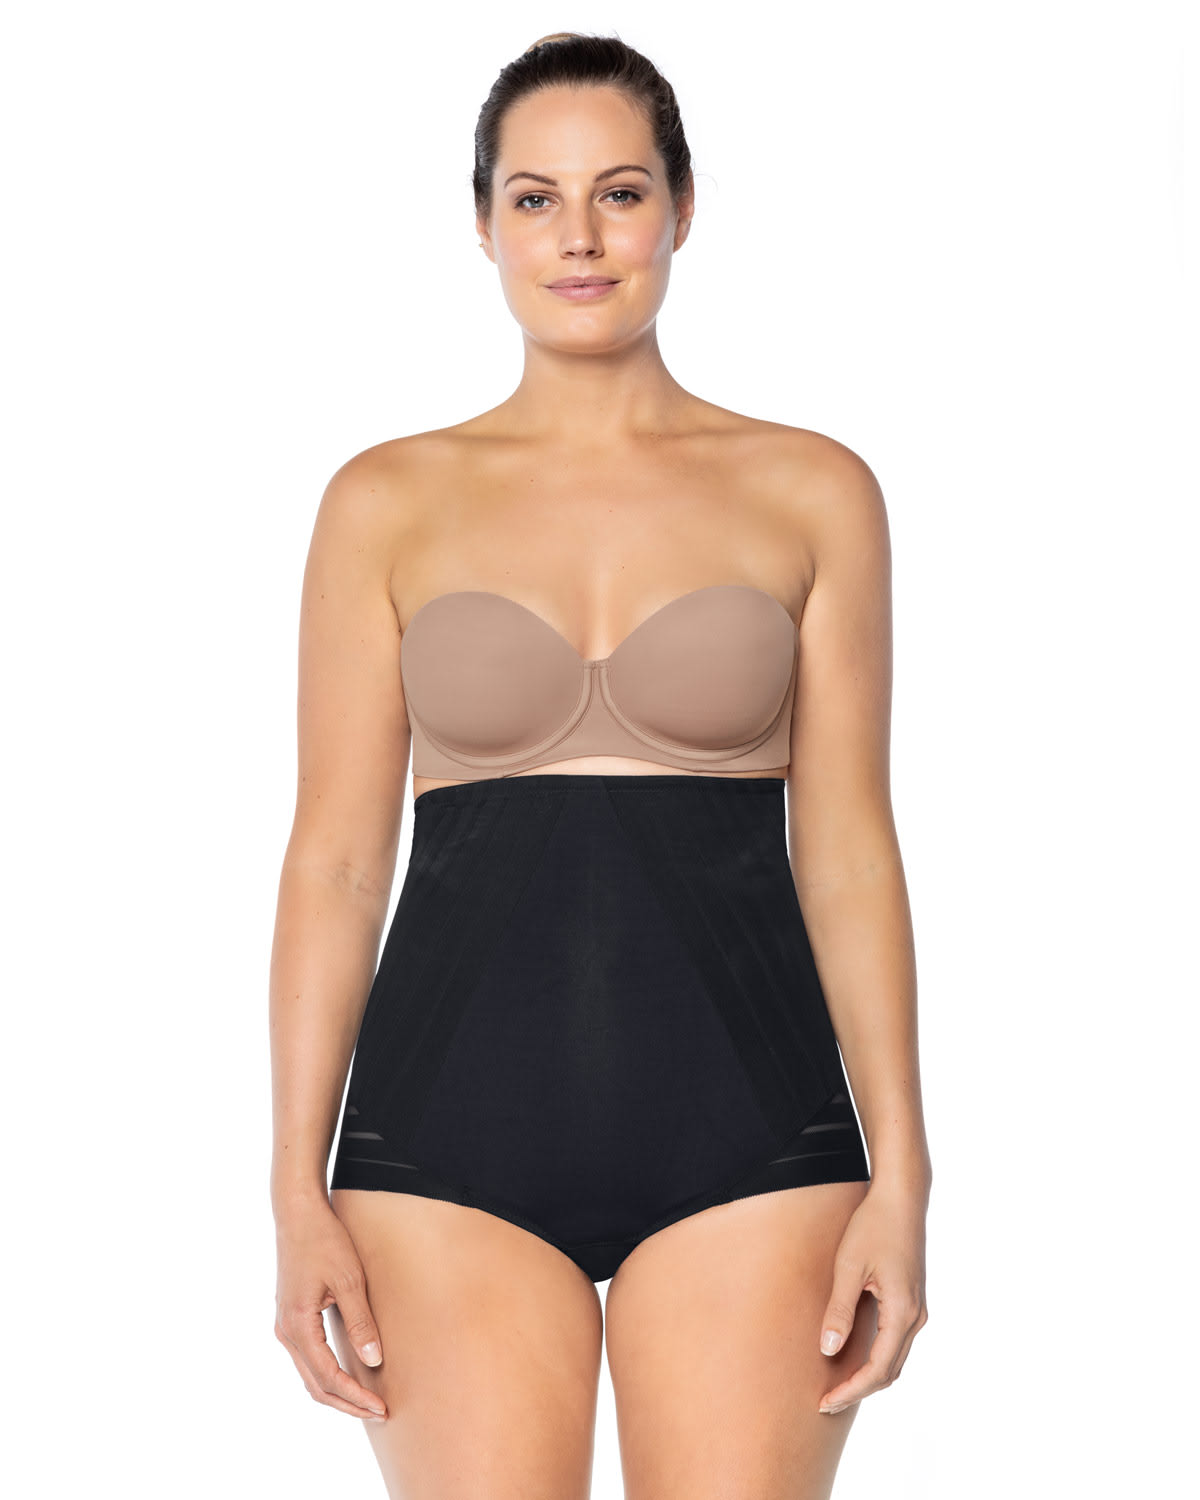 a9564ae19f Leonisa Undetectable Firm Control Hi-Waist Panty Shaper Free ...